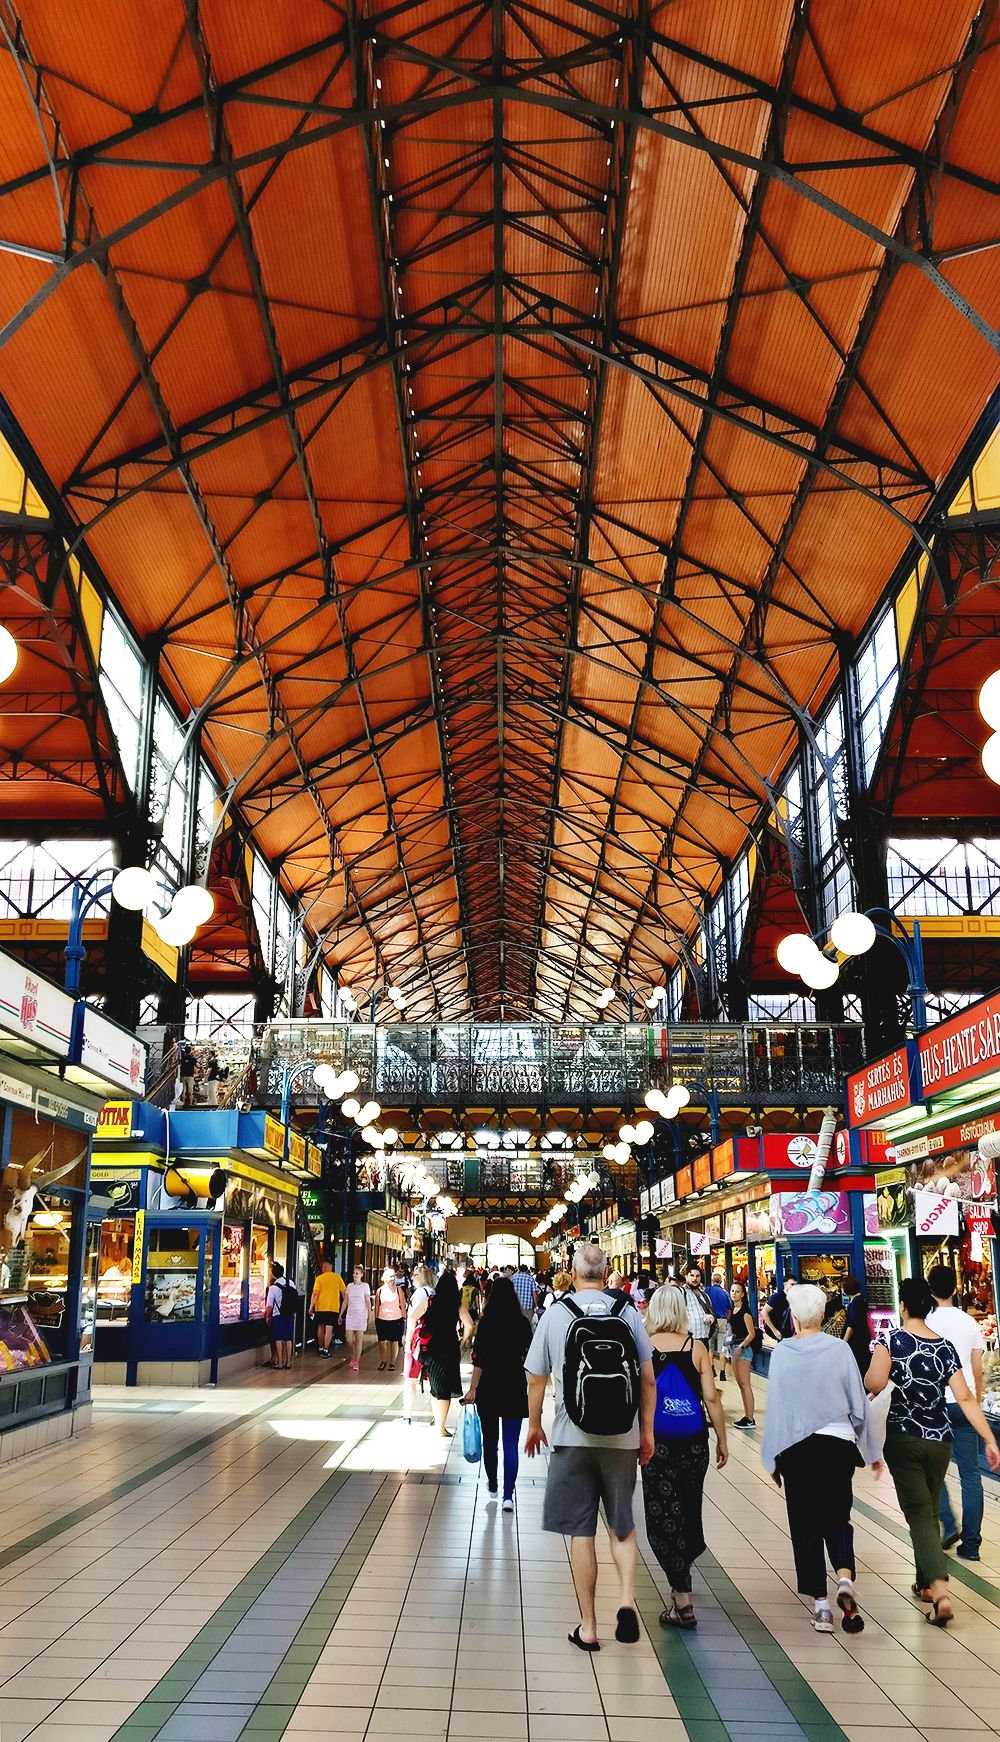 Discover the Great Market Hall - Budapest bucket list - Top things to do in Budapest | Aliz's Wonderland #travel #Budapest #bucketlist #Budapestbucketlist #printable